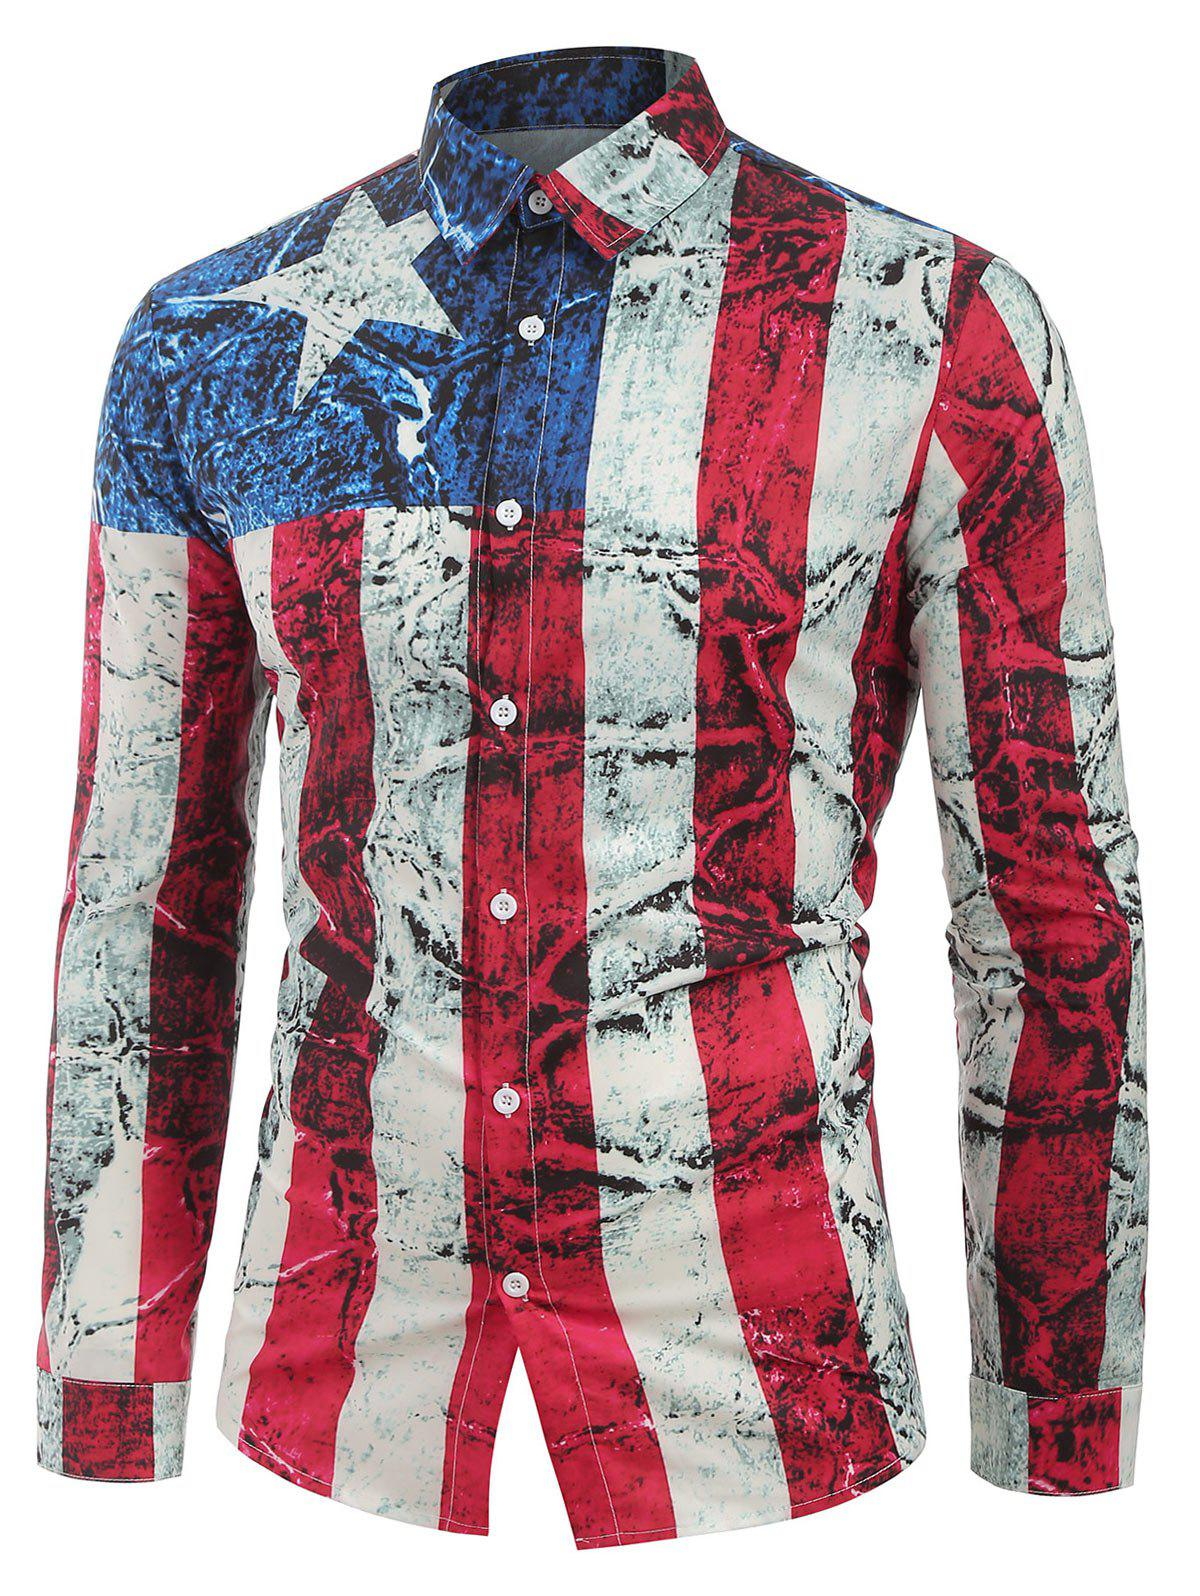 Discount Long Sleeves Distressed American Flag Print Button Shirt